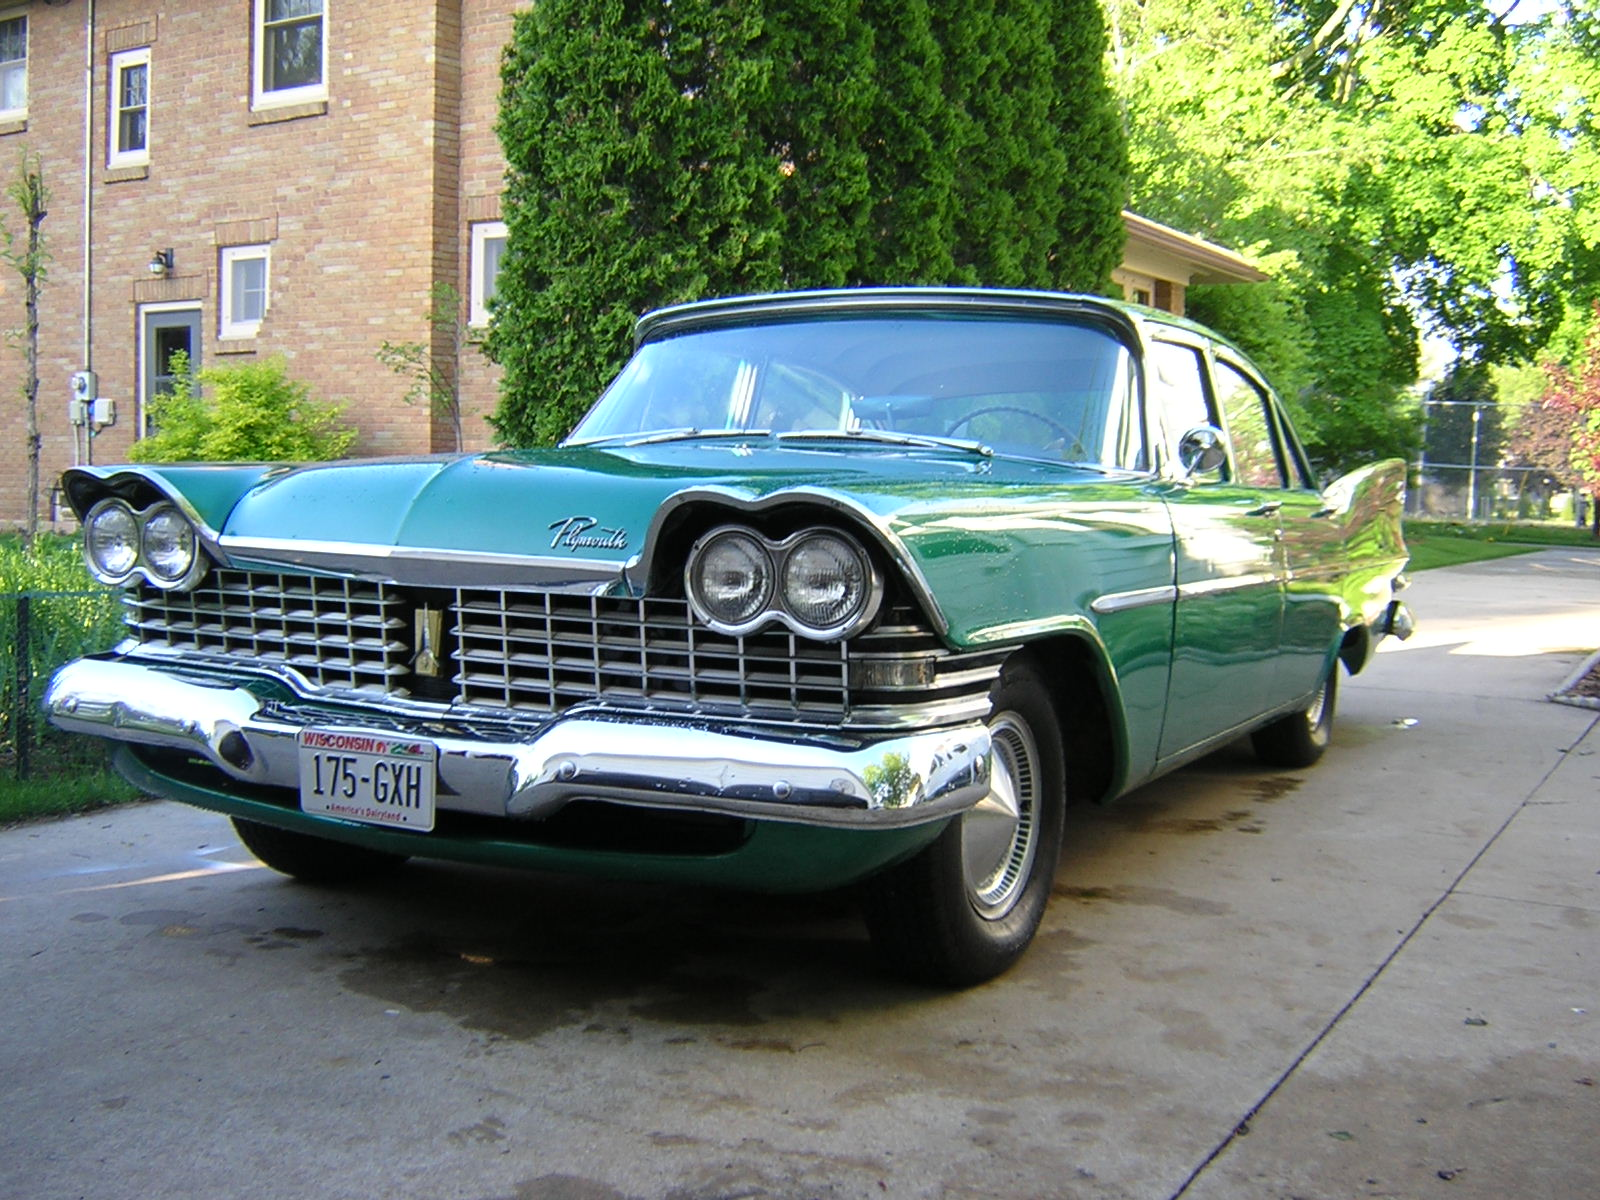 1959 plymouth sport fury interior related keywords - 1959 Plymouth Sport Fury Interior Related Keywords 10